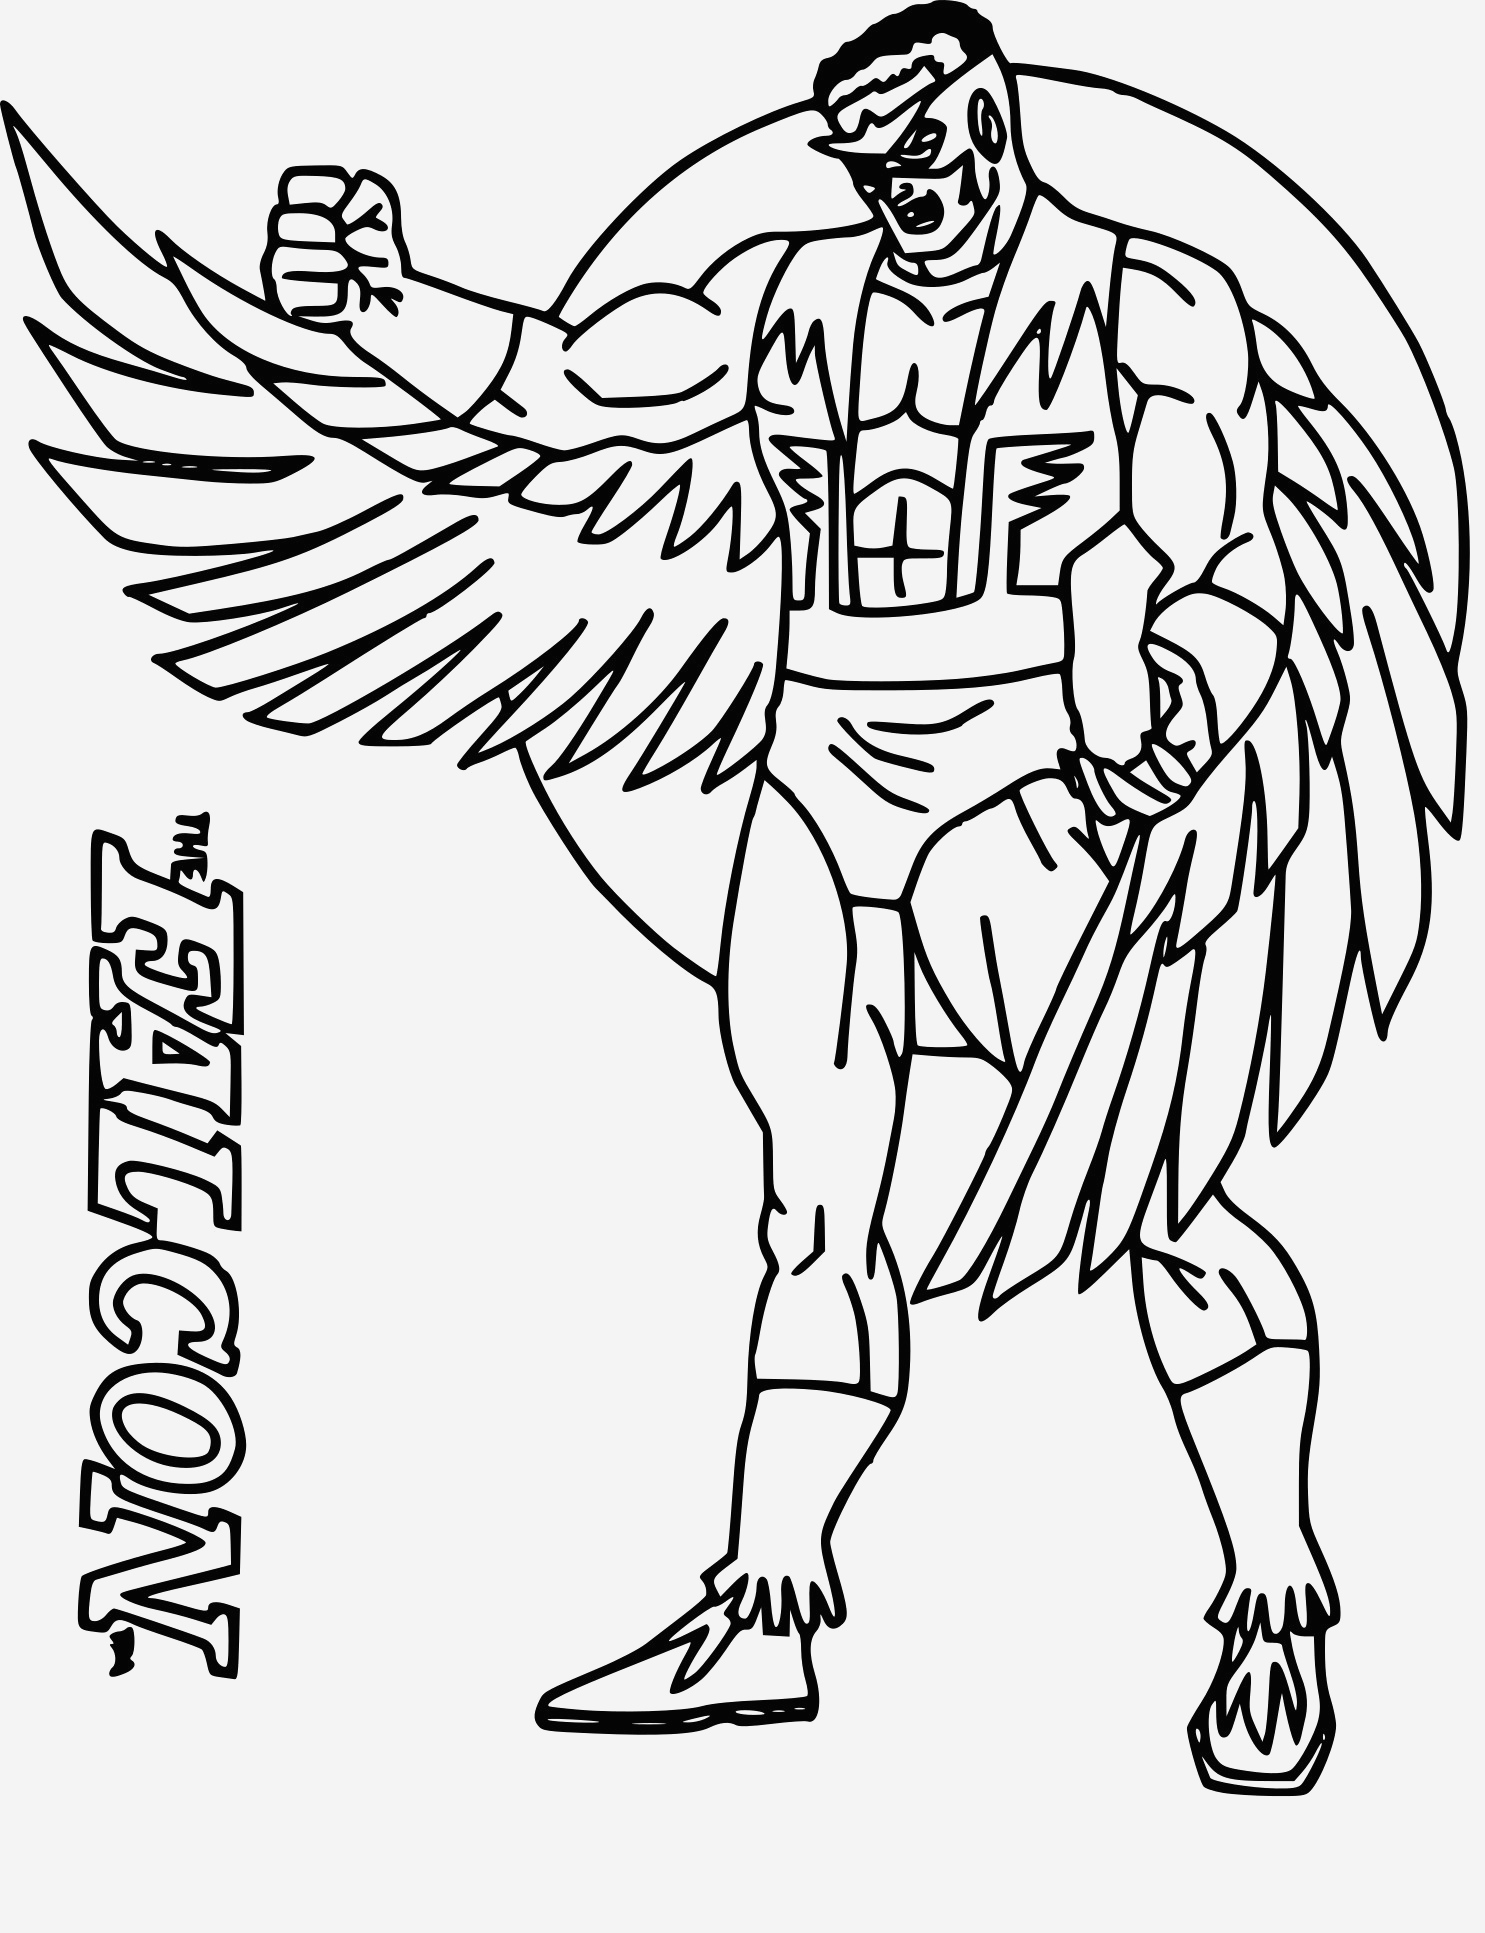 Coloriage Avengers à Imprimer Awesome Coloriage Avengers Thor Et son Marteau Coloriage Lego Of 25 Coloriage Avengers à Imprimer